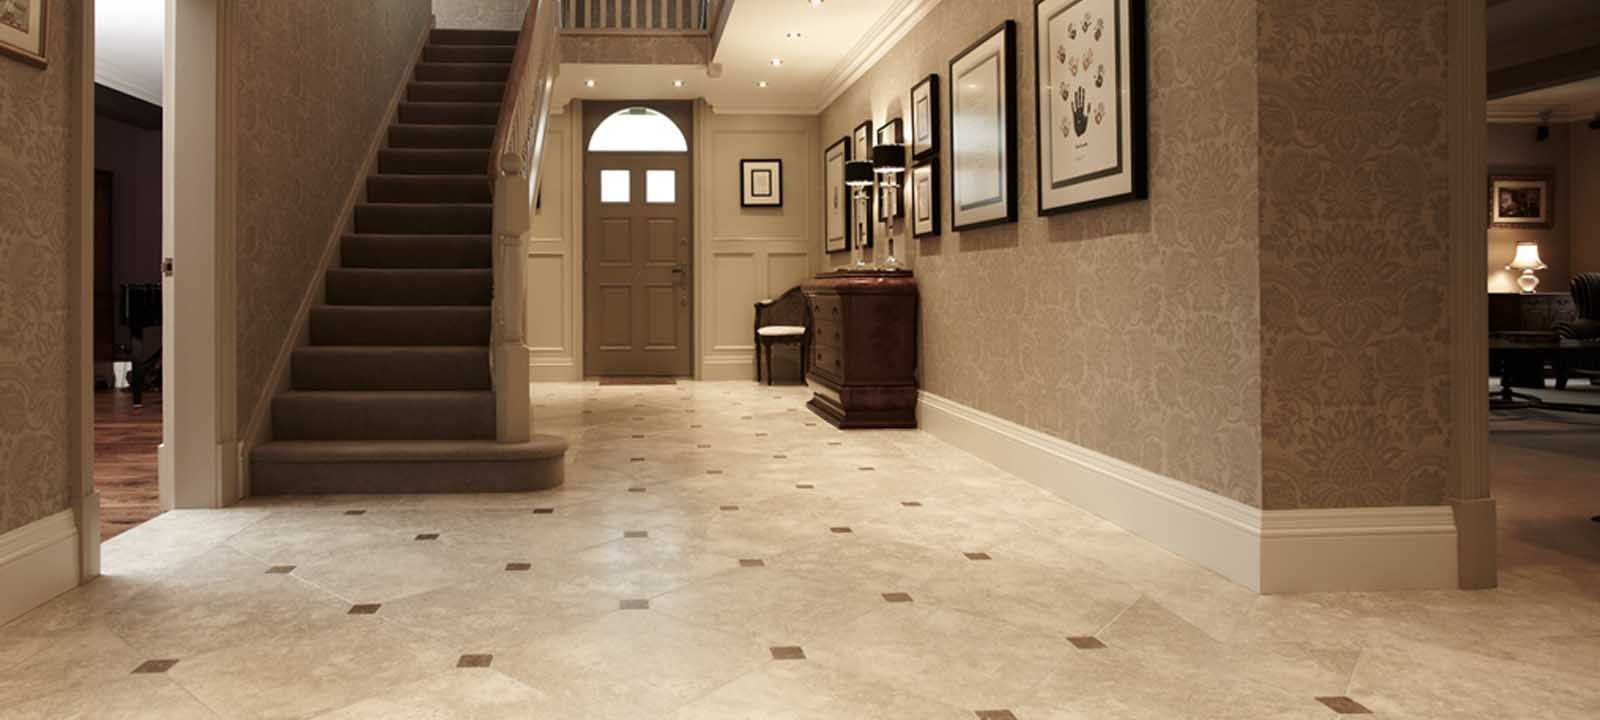 Image Result For Pictures Of Floor Tiles For Entrance Hall Floor